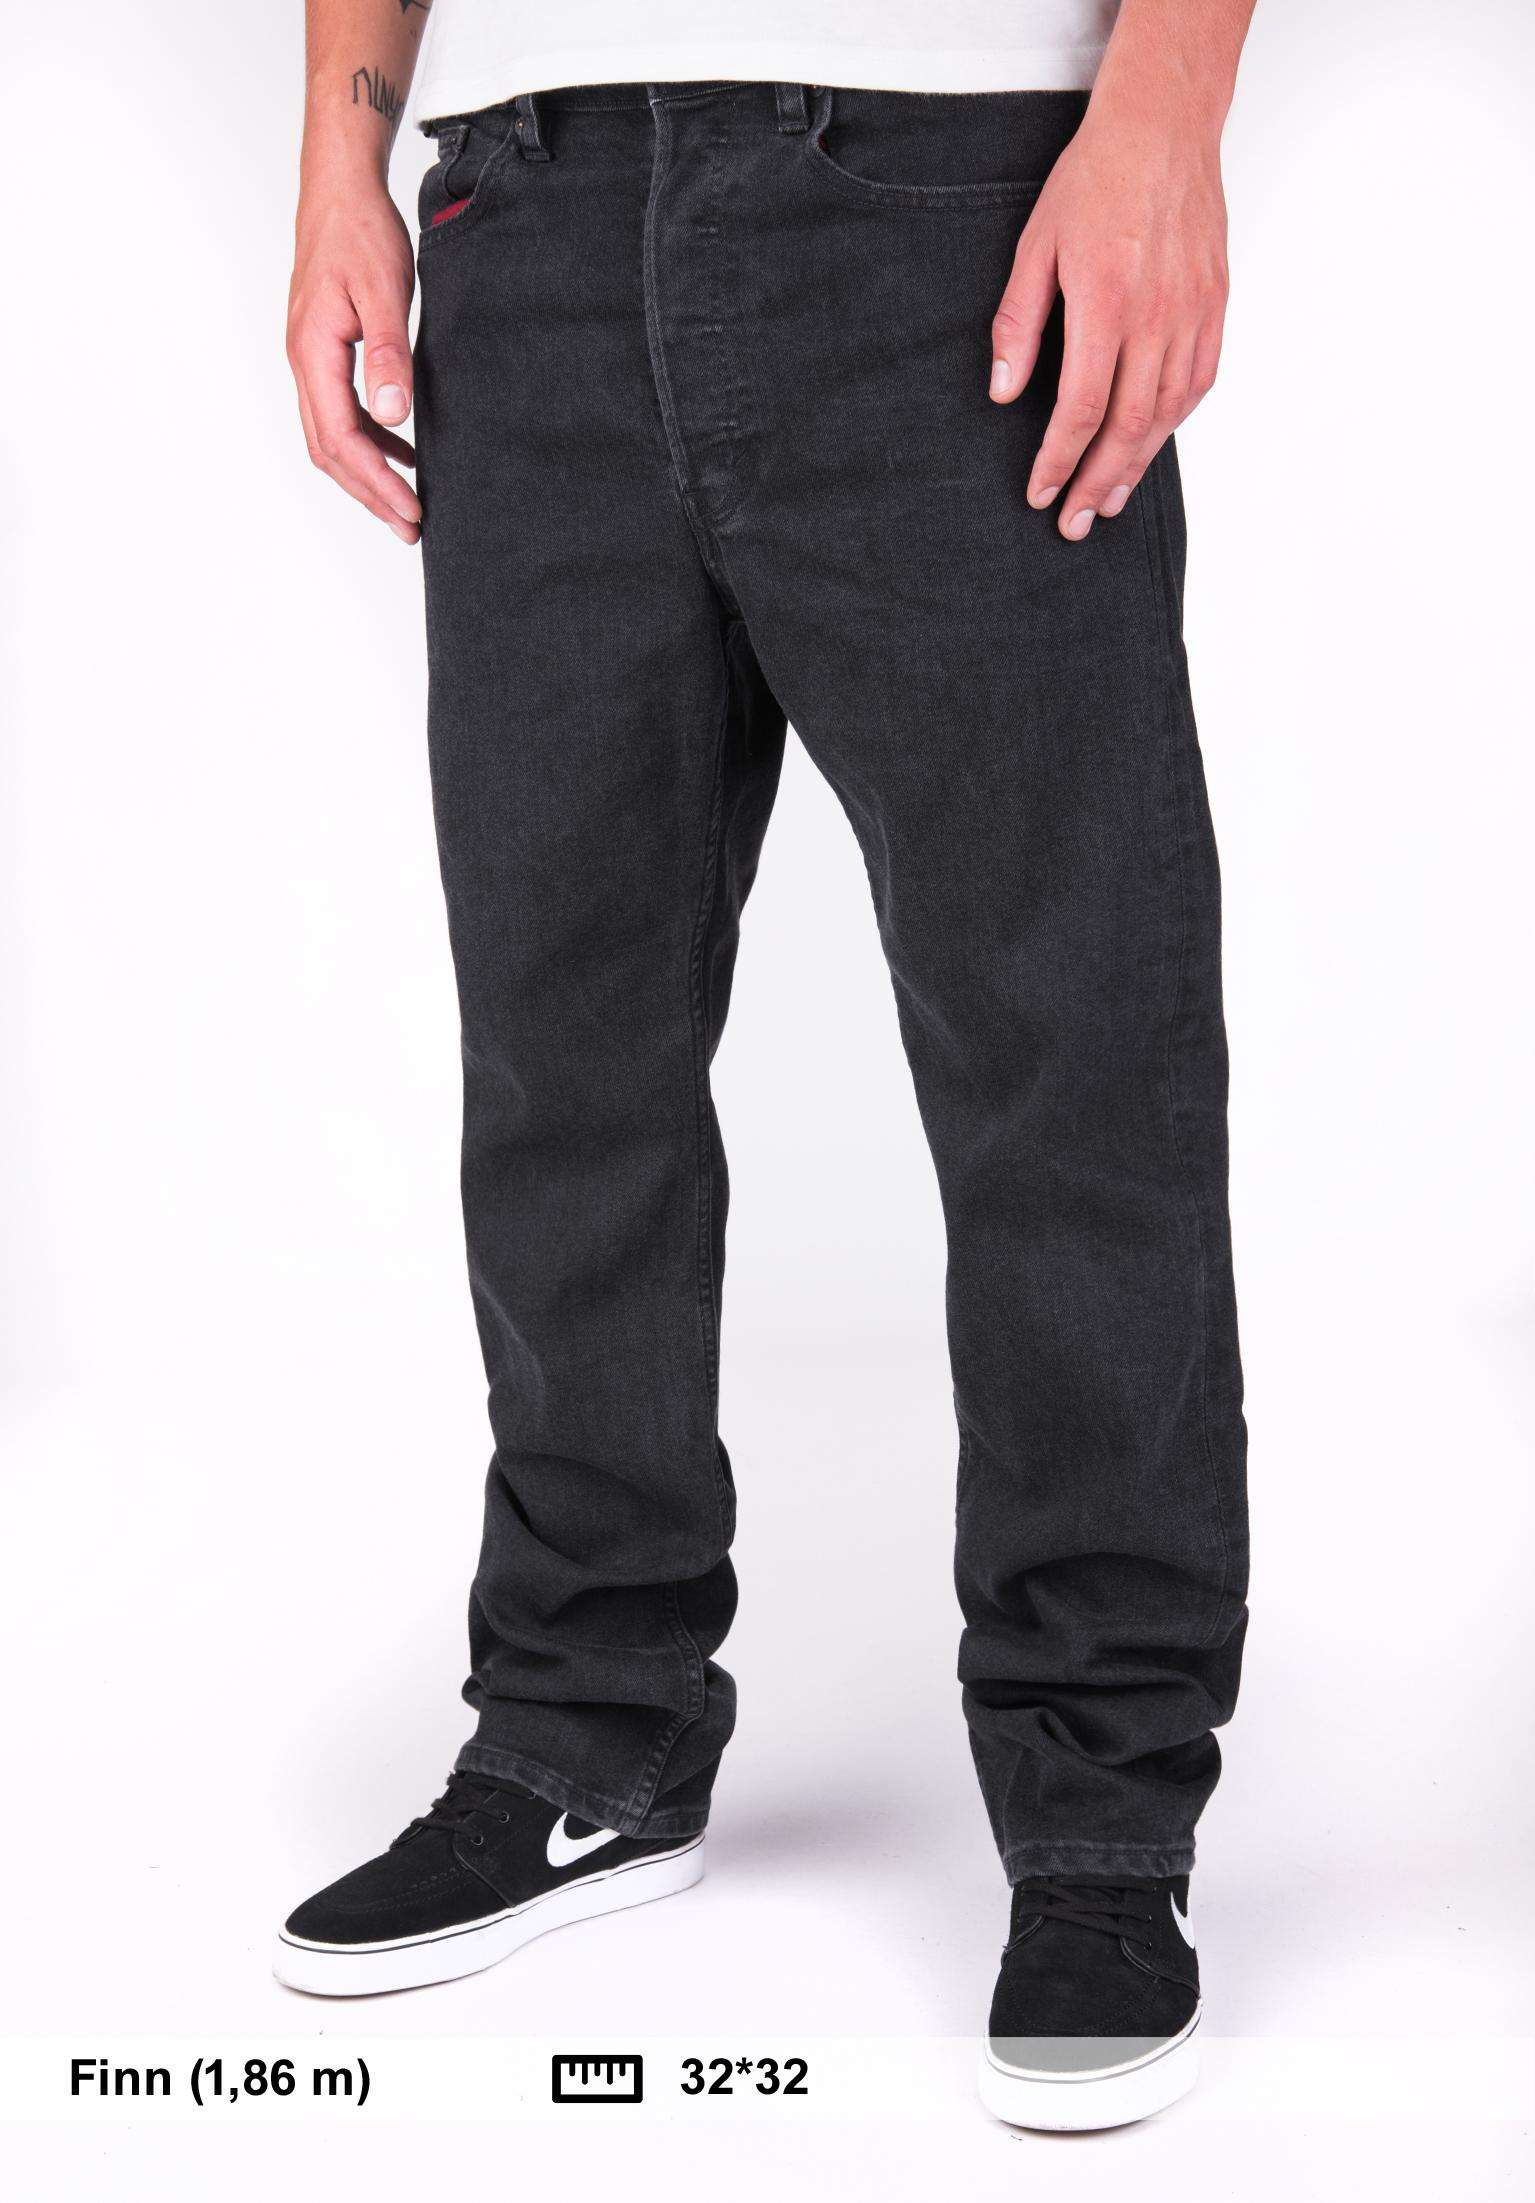 Men Jeans Skate In 501 Original Titus Blackrinse For Levis qaAW1T6